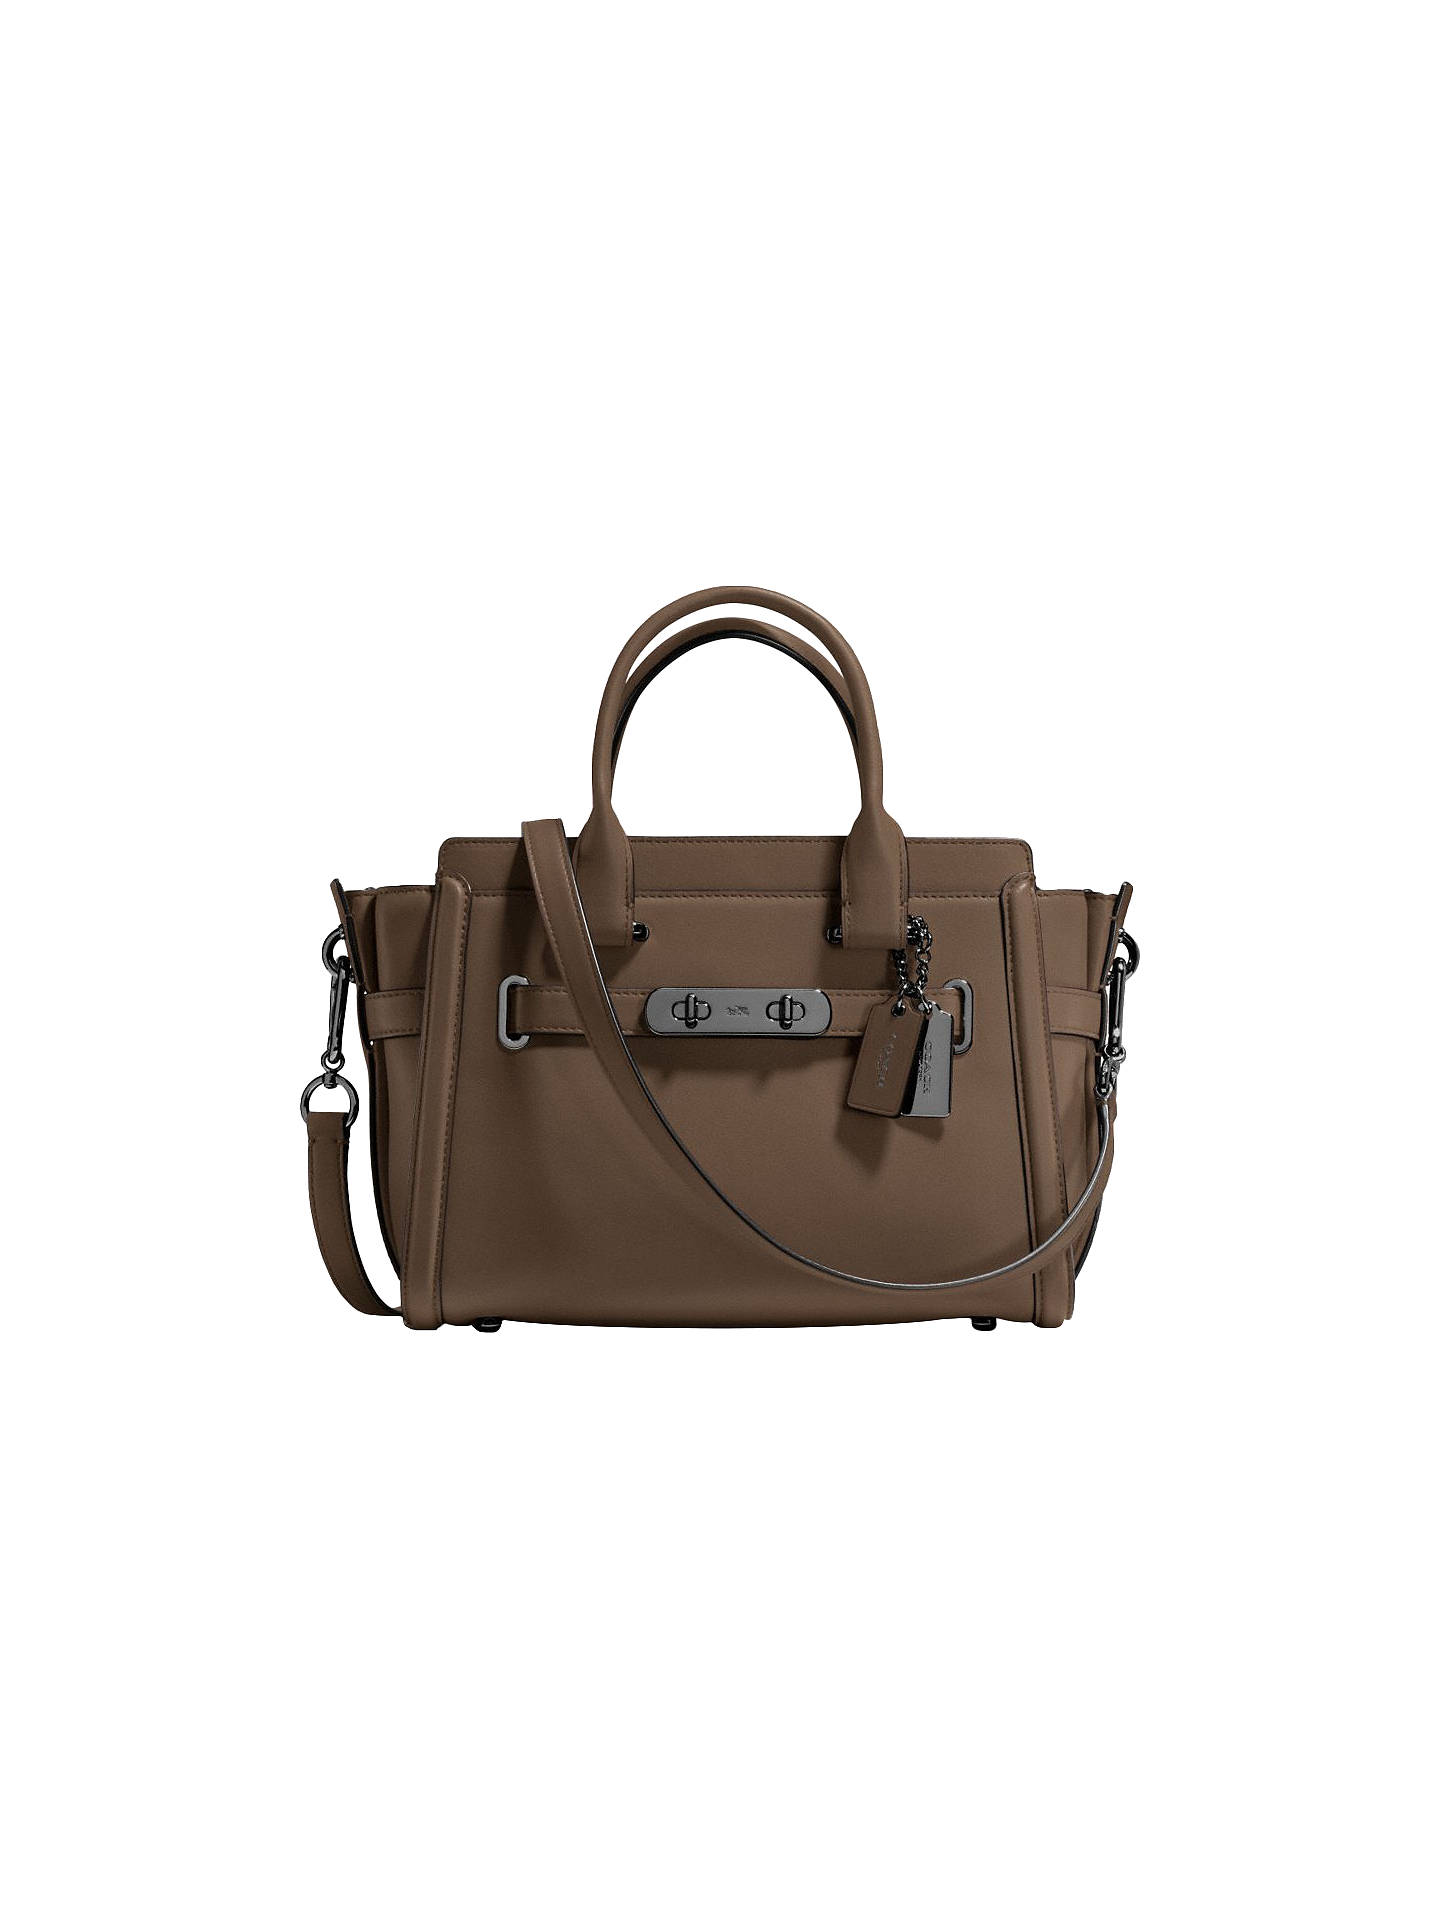 Coach Swagger 27 Glovetanned Leather Across Body Bag, Grey at John